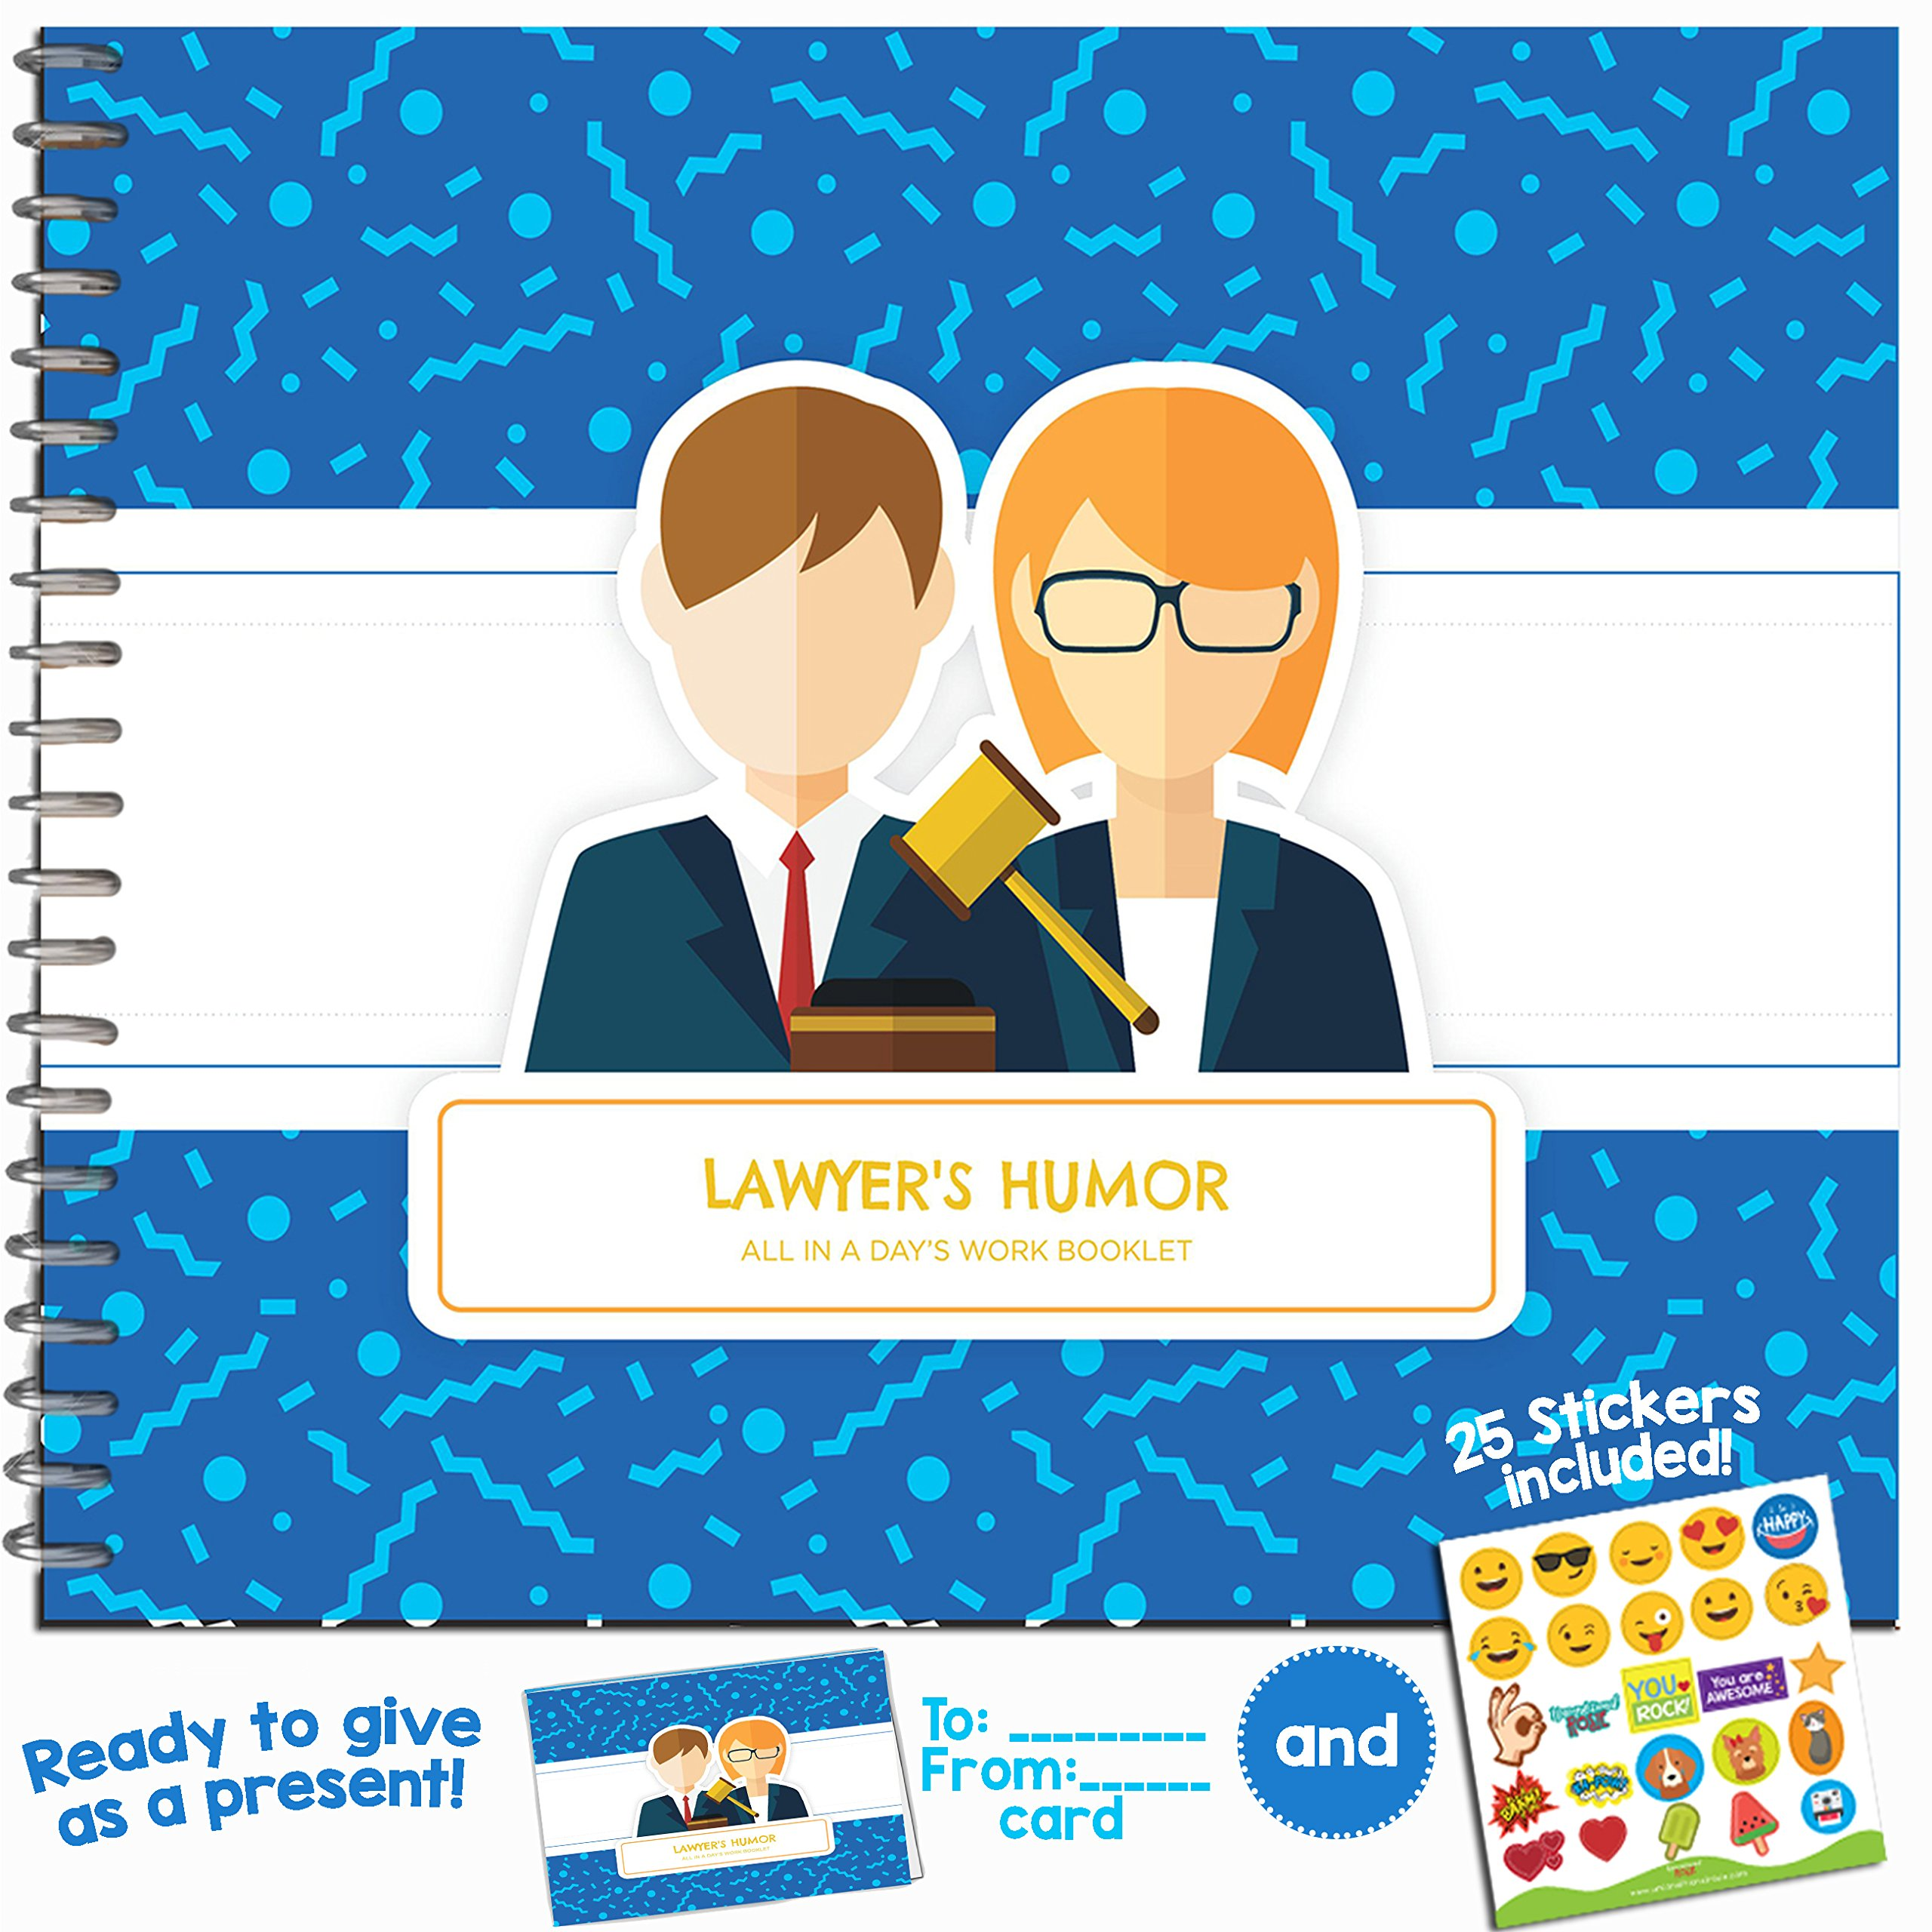 Lawyer Gifts - The Perfect Present for Your